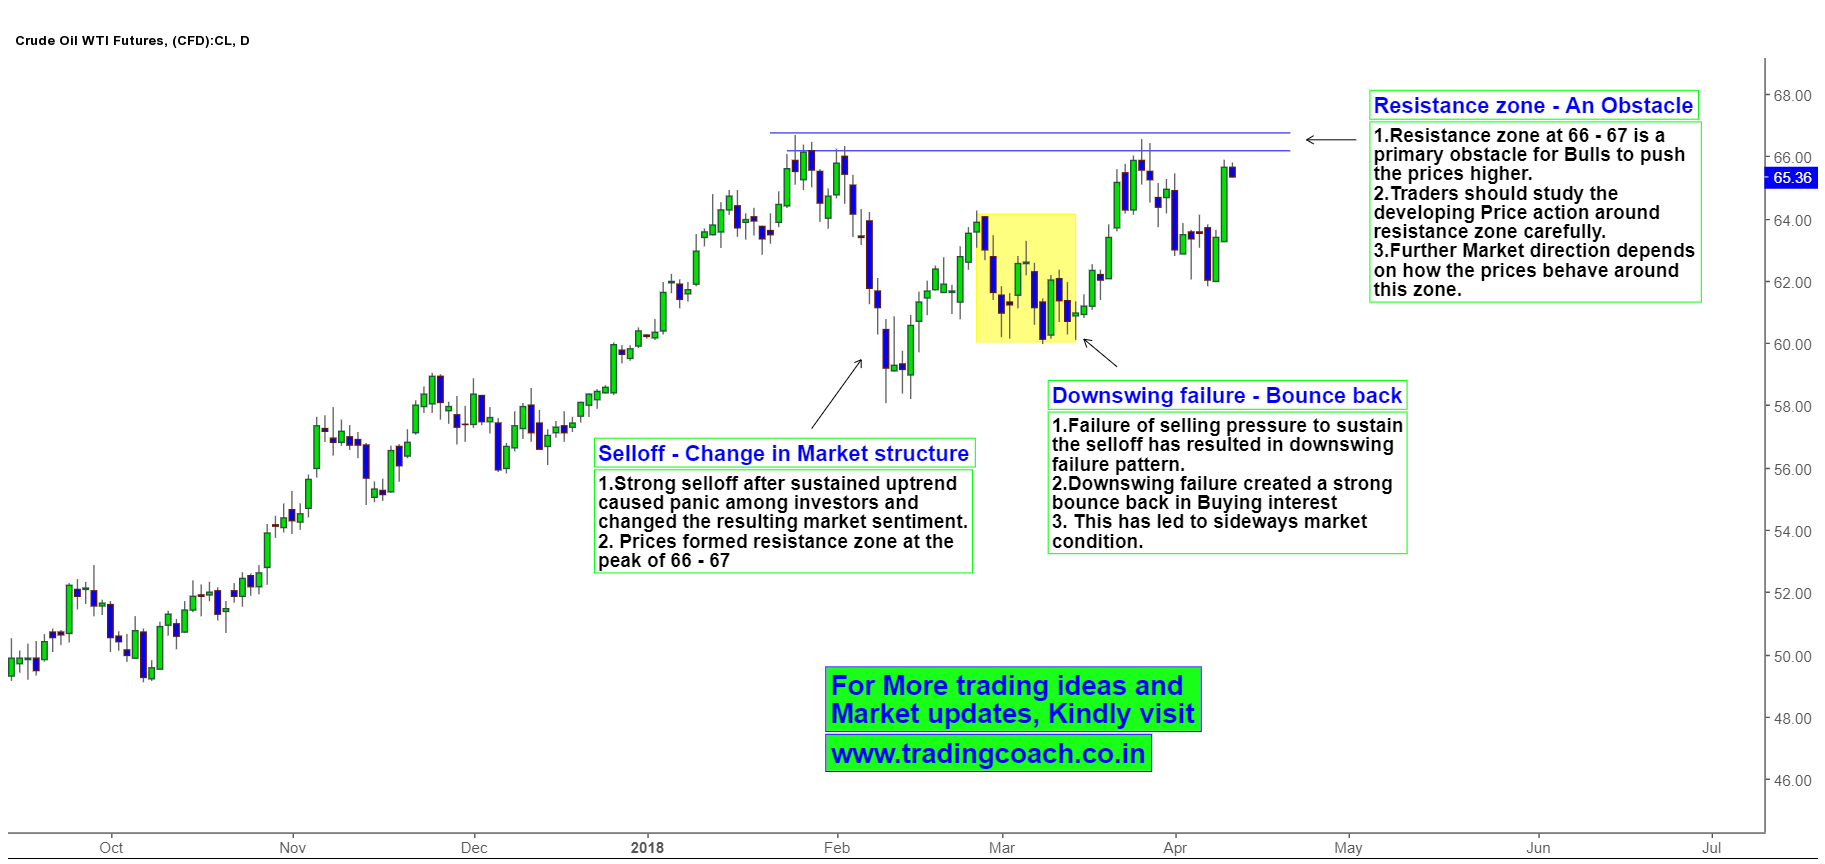 Crude Oil Price action trading near Resistance zone, Obstacle for Bulls